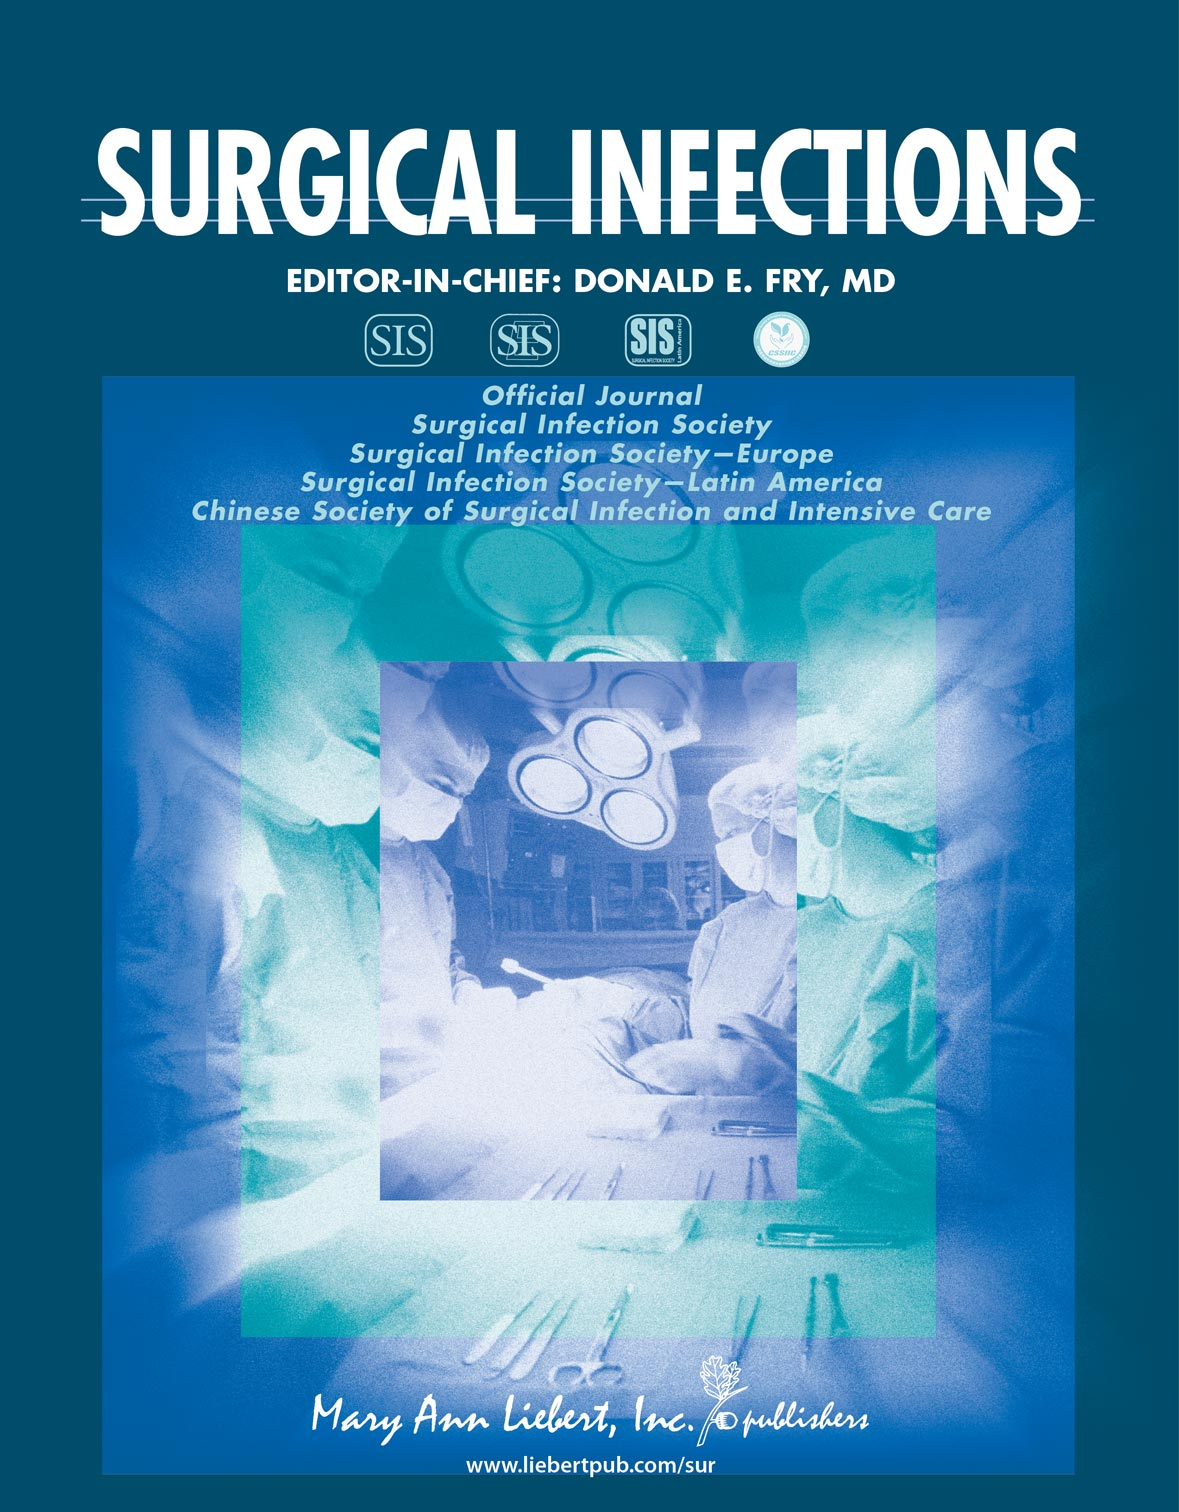 Source Control: A Guide to the Management of Surgical Infections